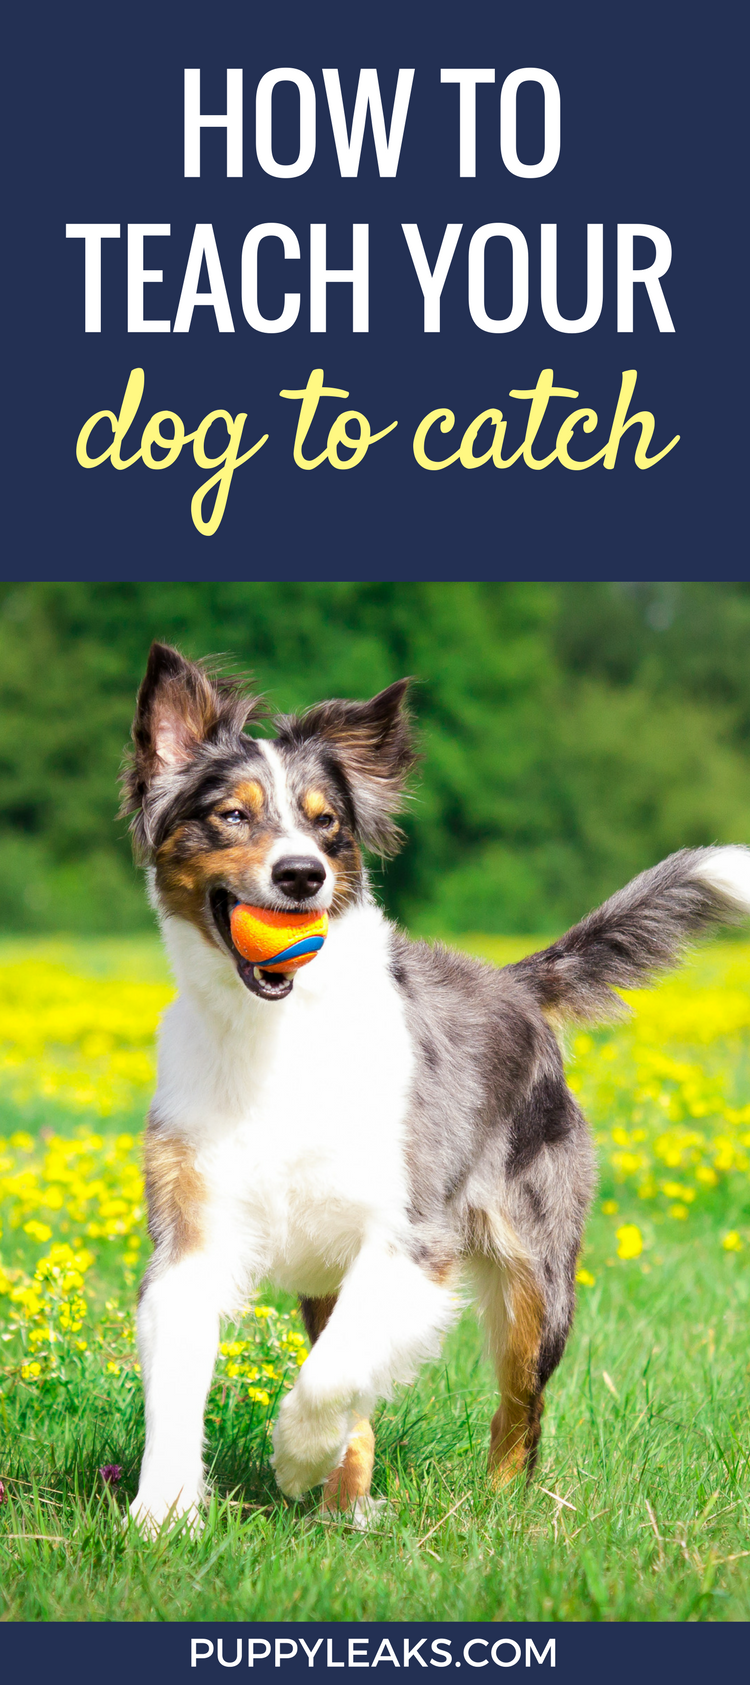 The easy way to teach your dog to catch.